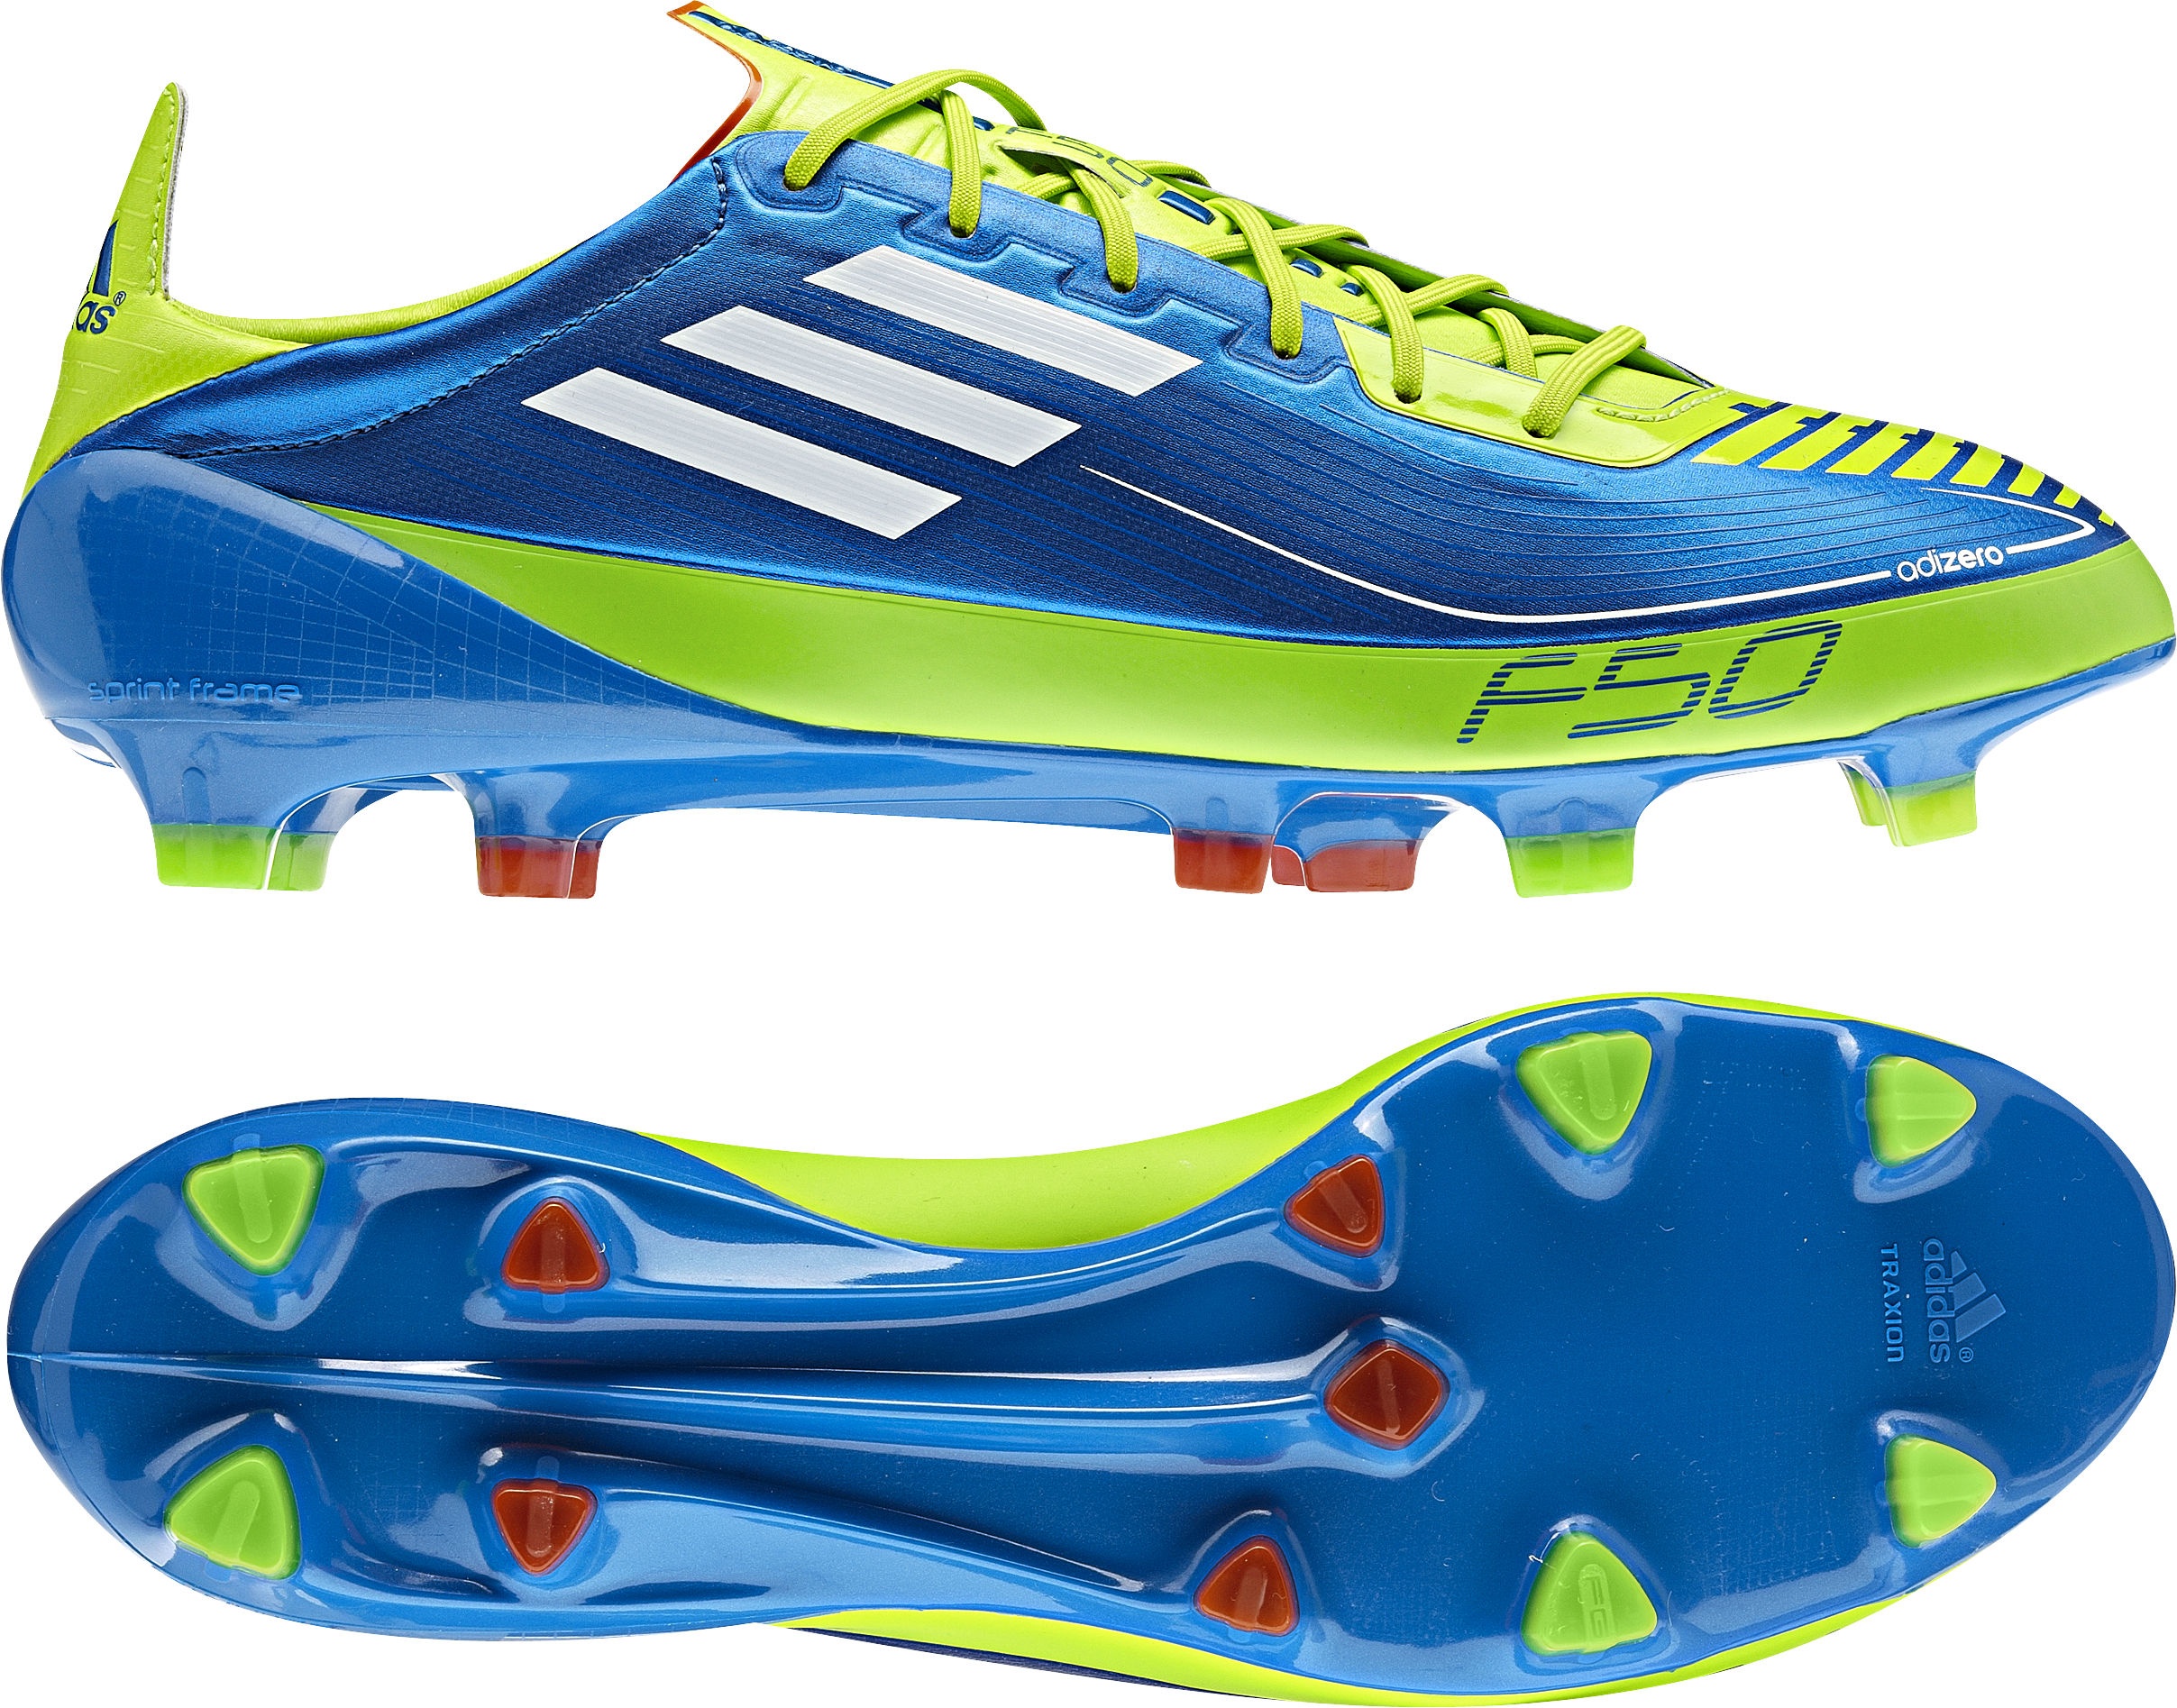 35f0707f4 Football boot release  New adidas f50 adizero Prime colourway  Blue ...